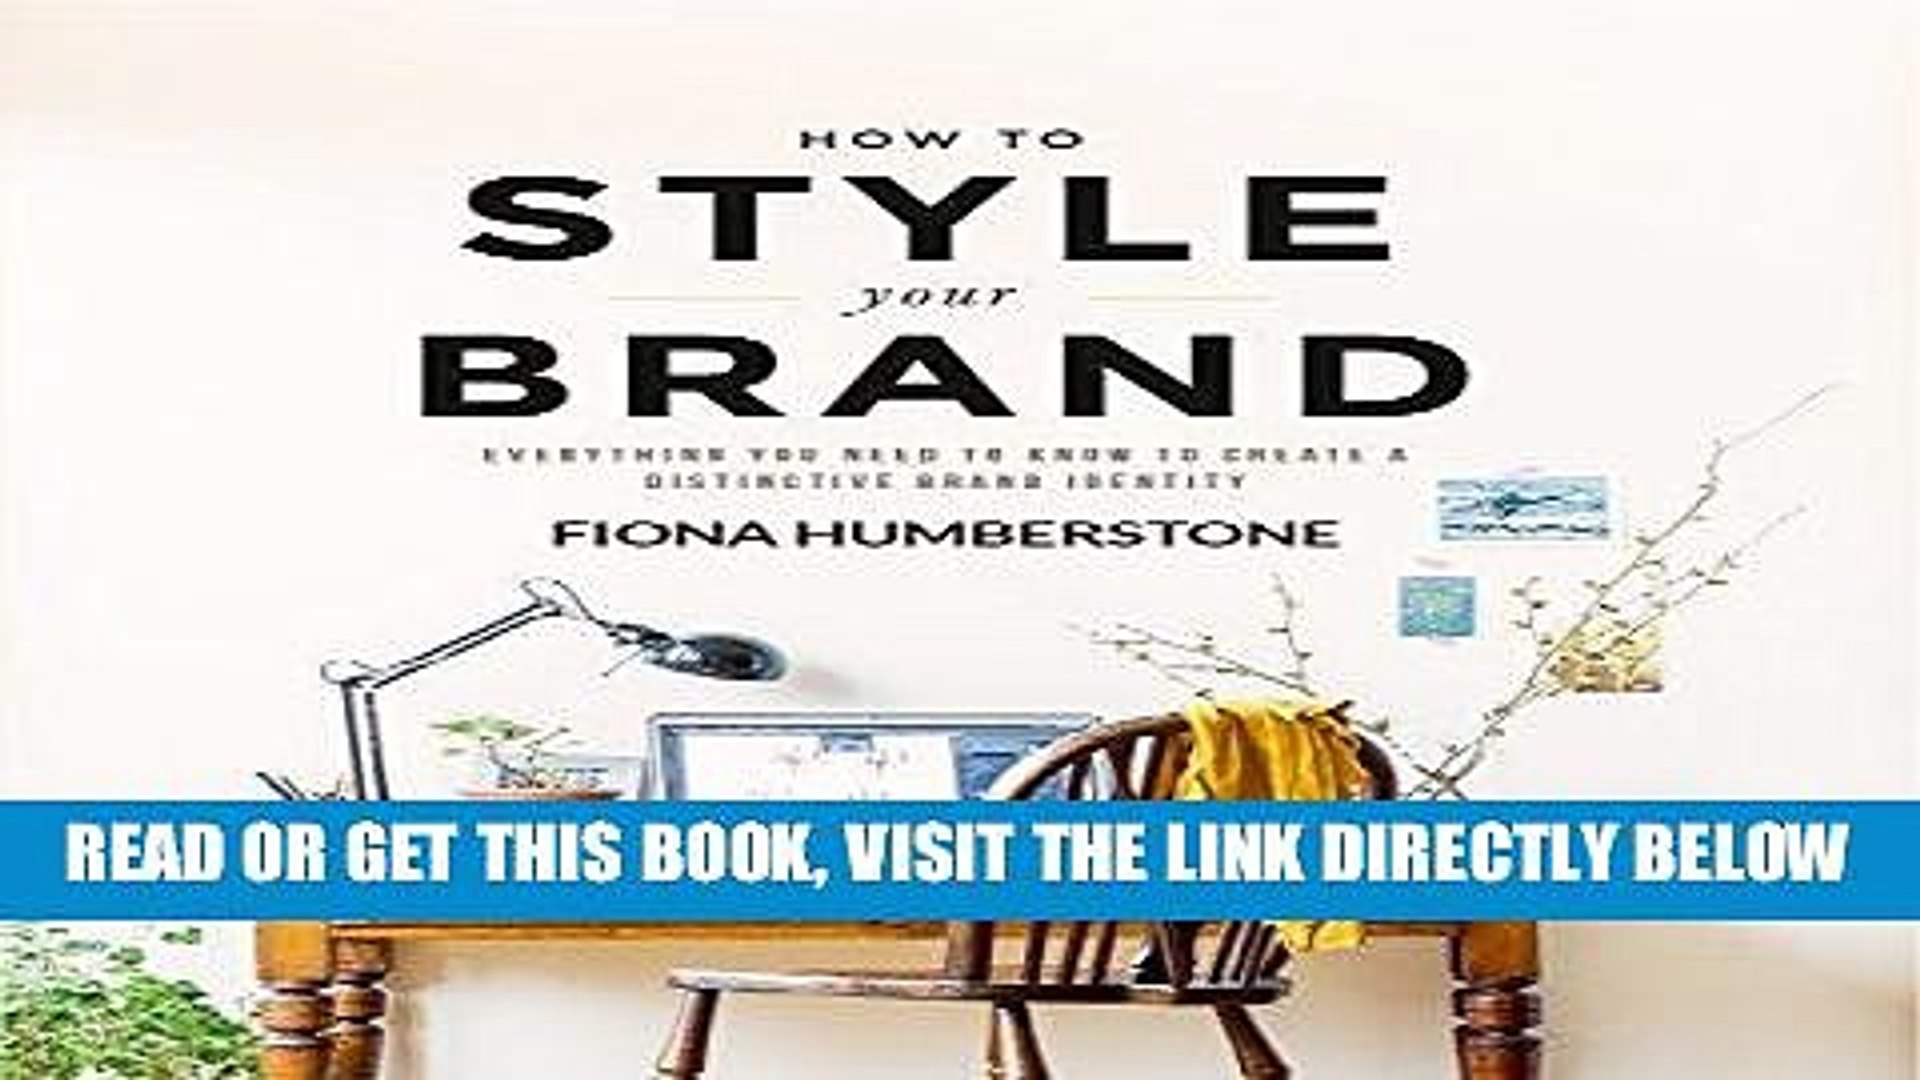 [Free Read] How to Style Your Brand: Everything You Need to Know to Create a Distinctive Brand